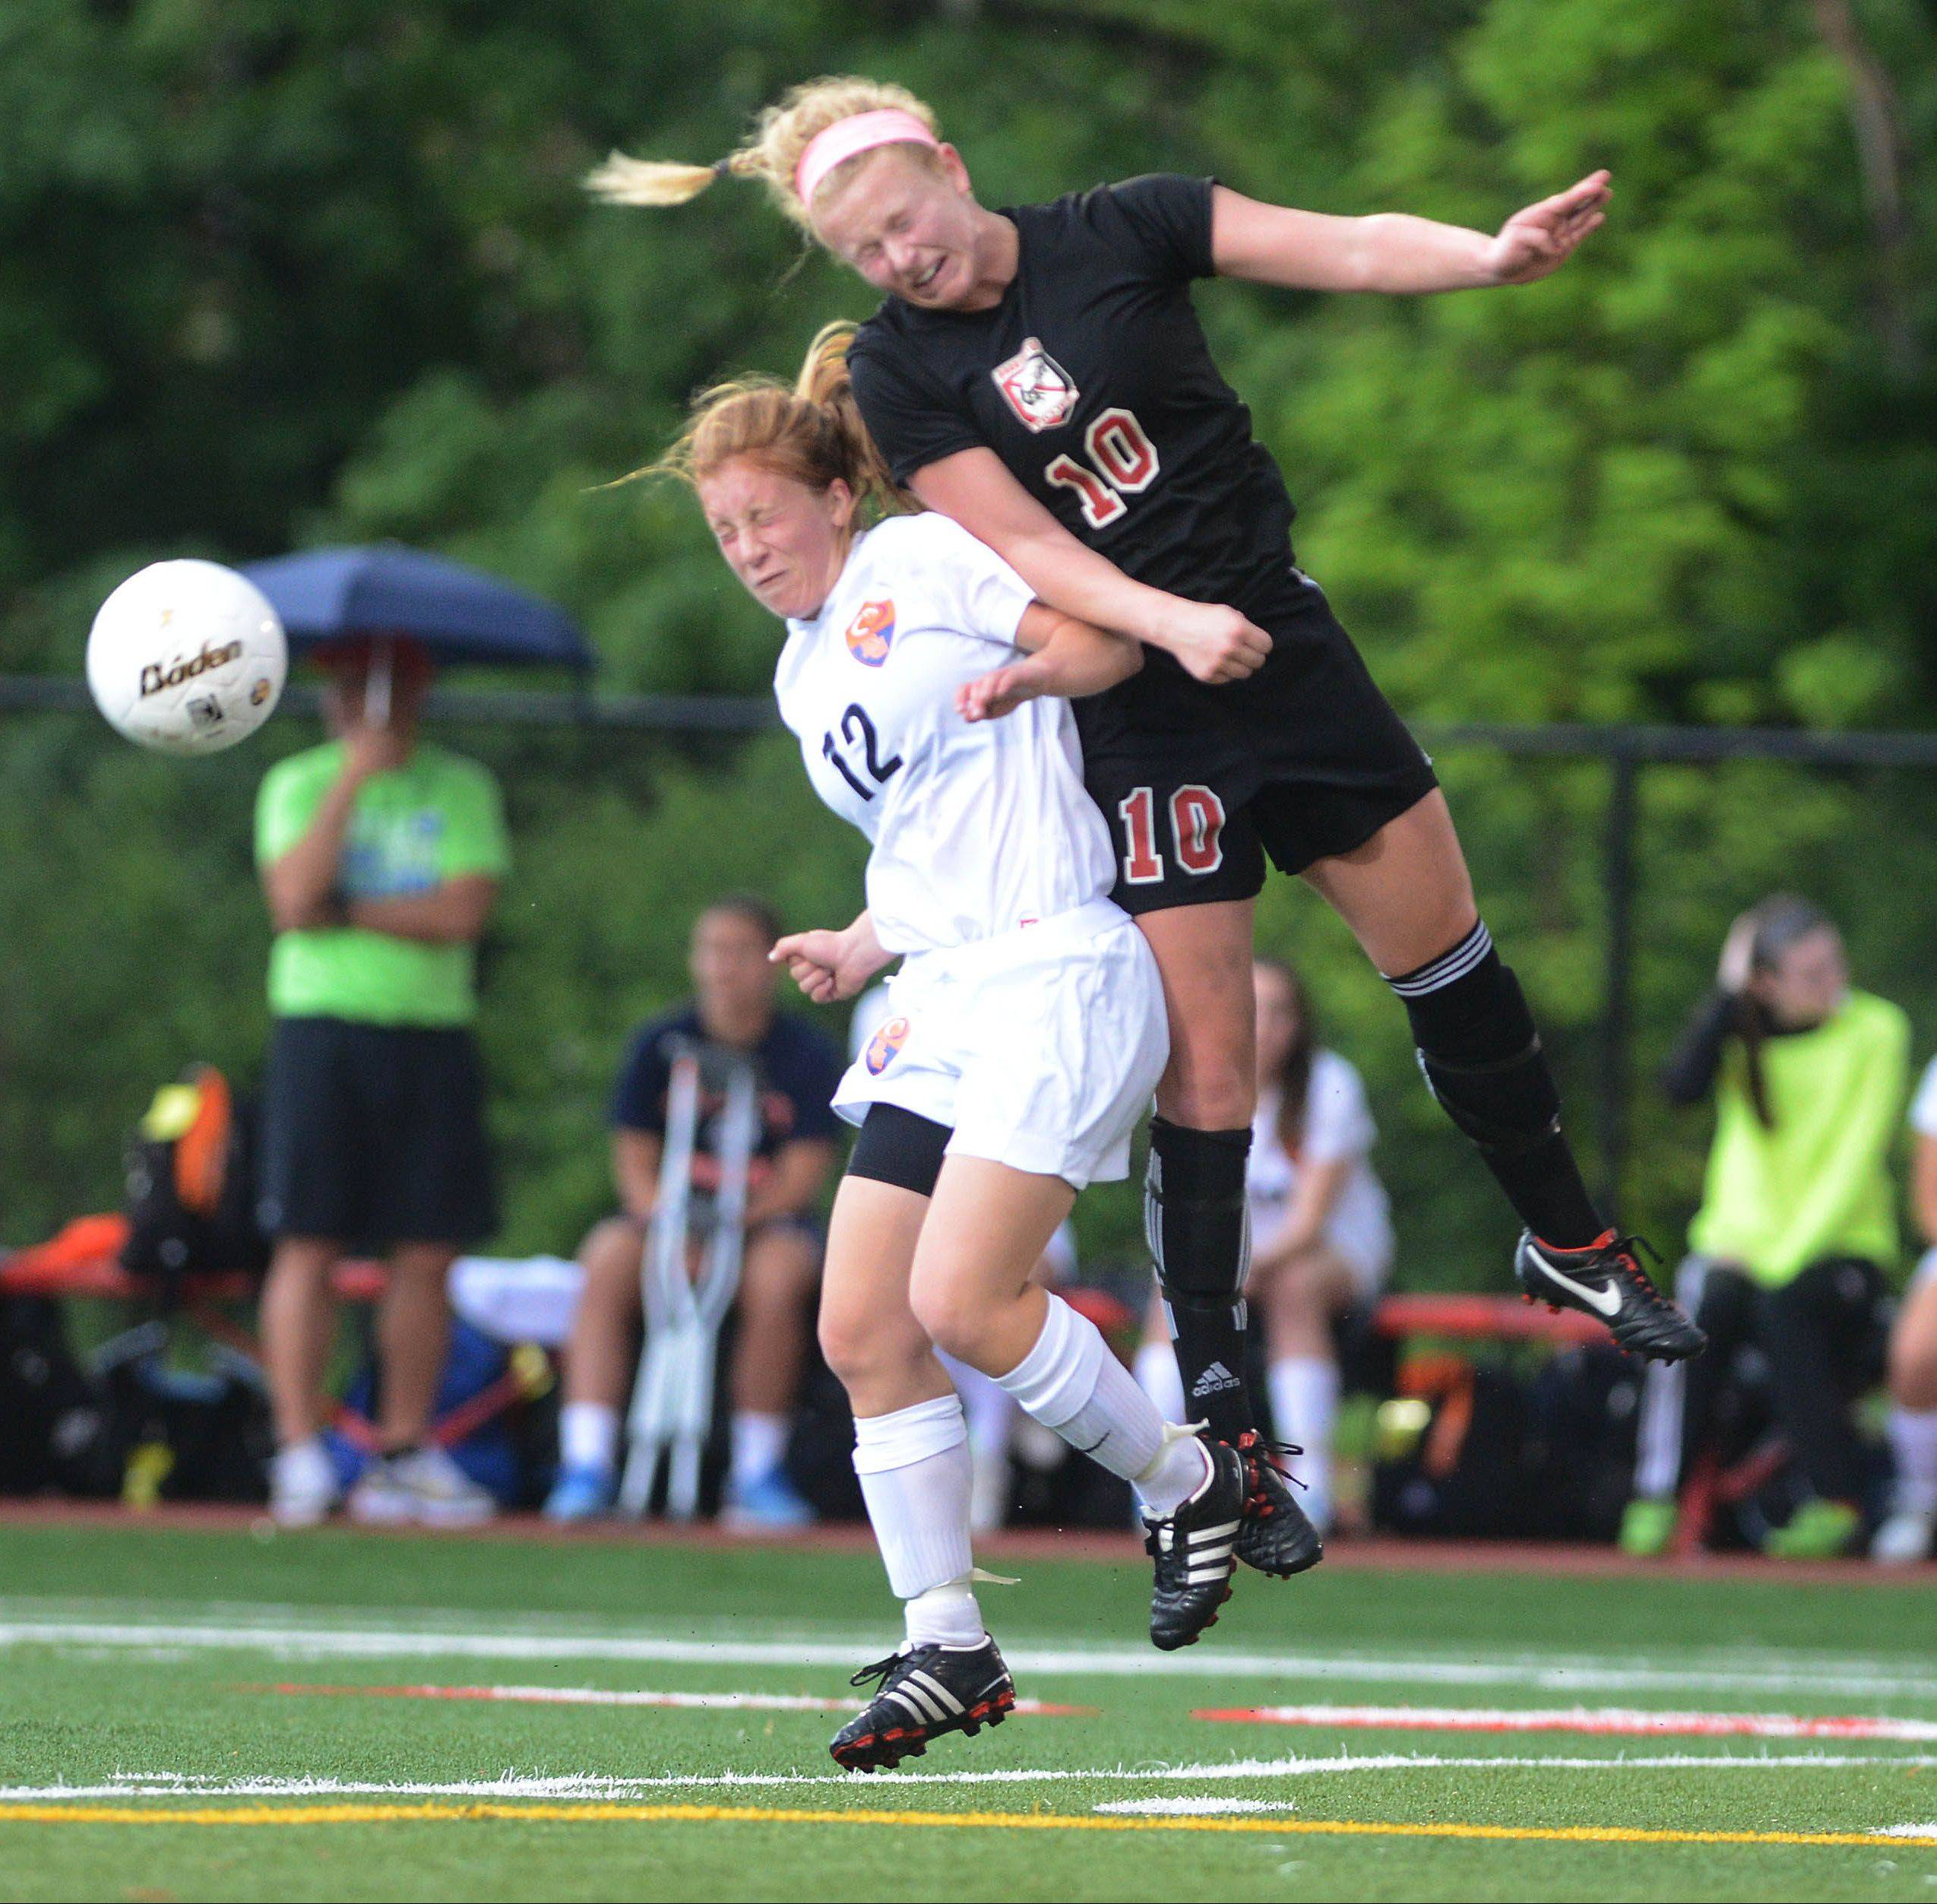 Colleen Zickert of Buffalo Grove, left, and Molly Pfeiffer of Barrington battle for possession during the girls soccer Class 3A third-place game in Naperville on Saturday.